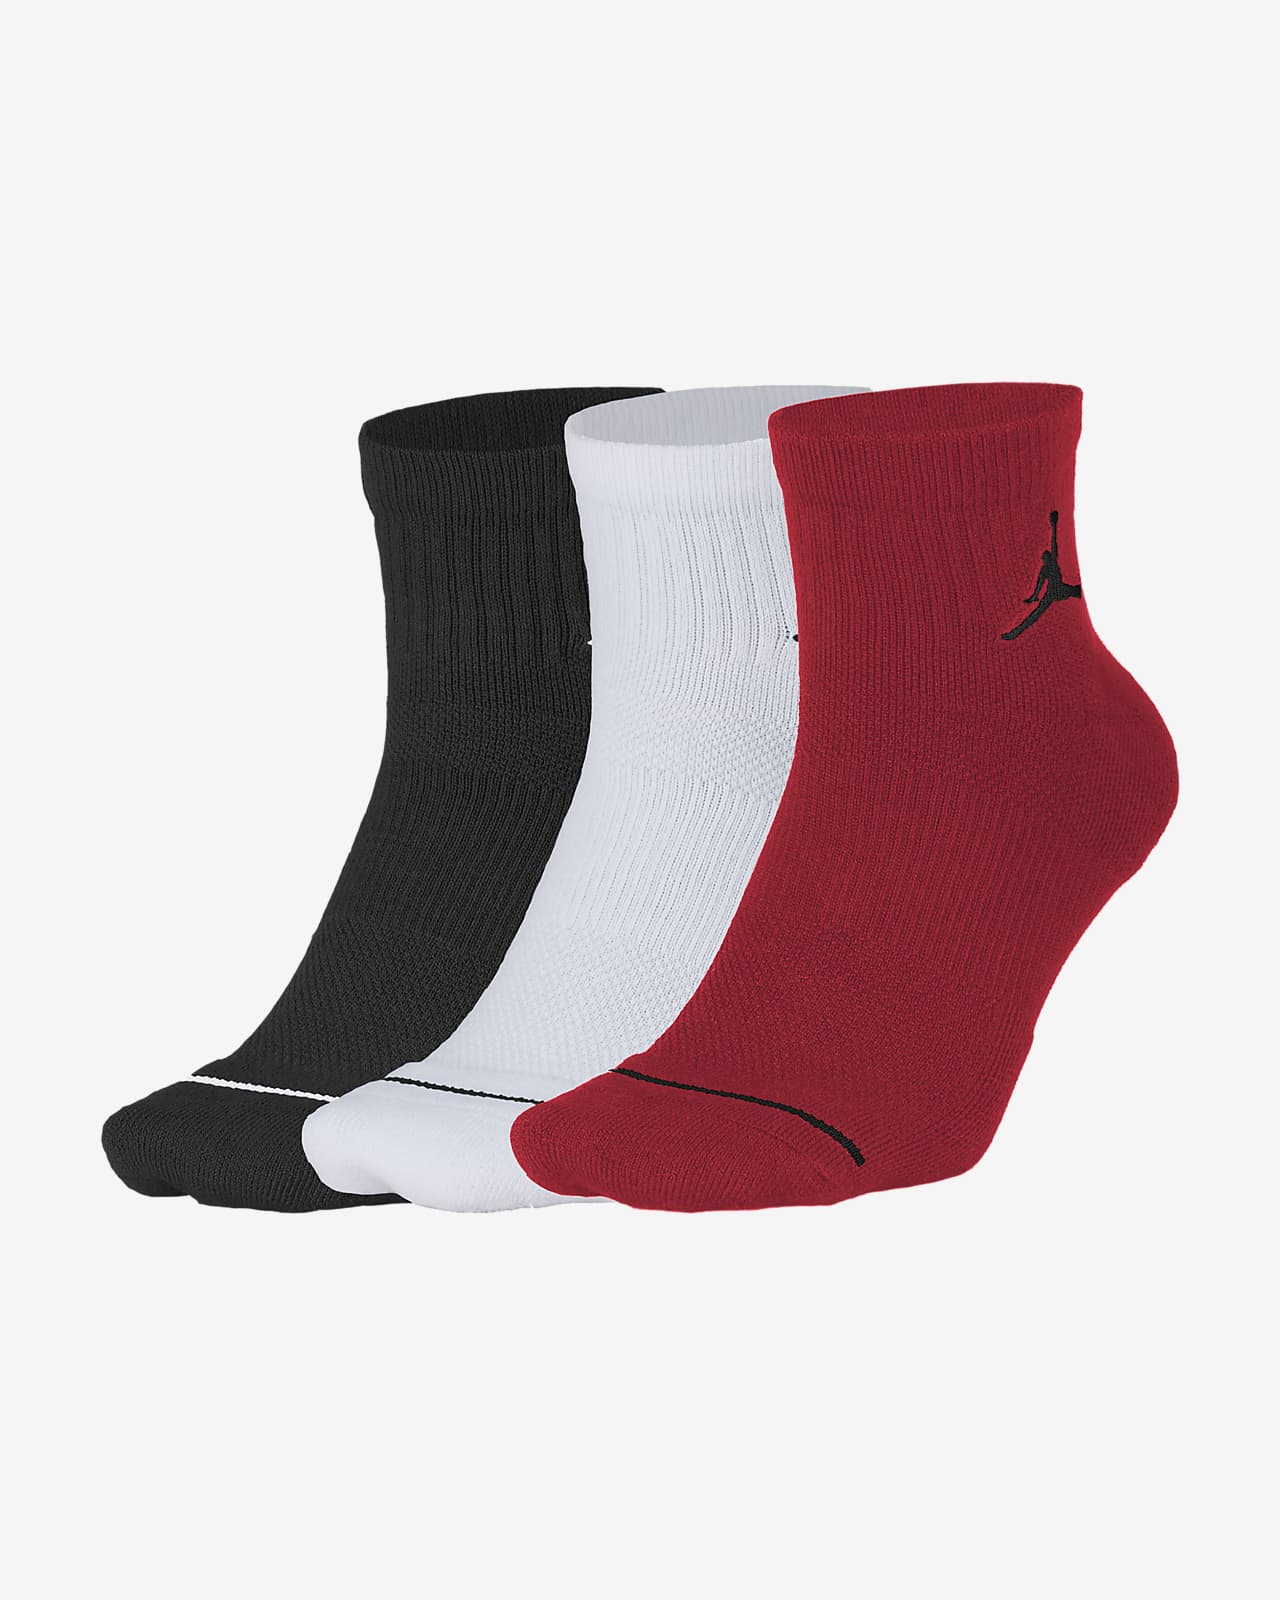 Jordan Everyday Max Ankles Socks (3 Pairs)